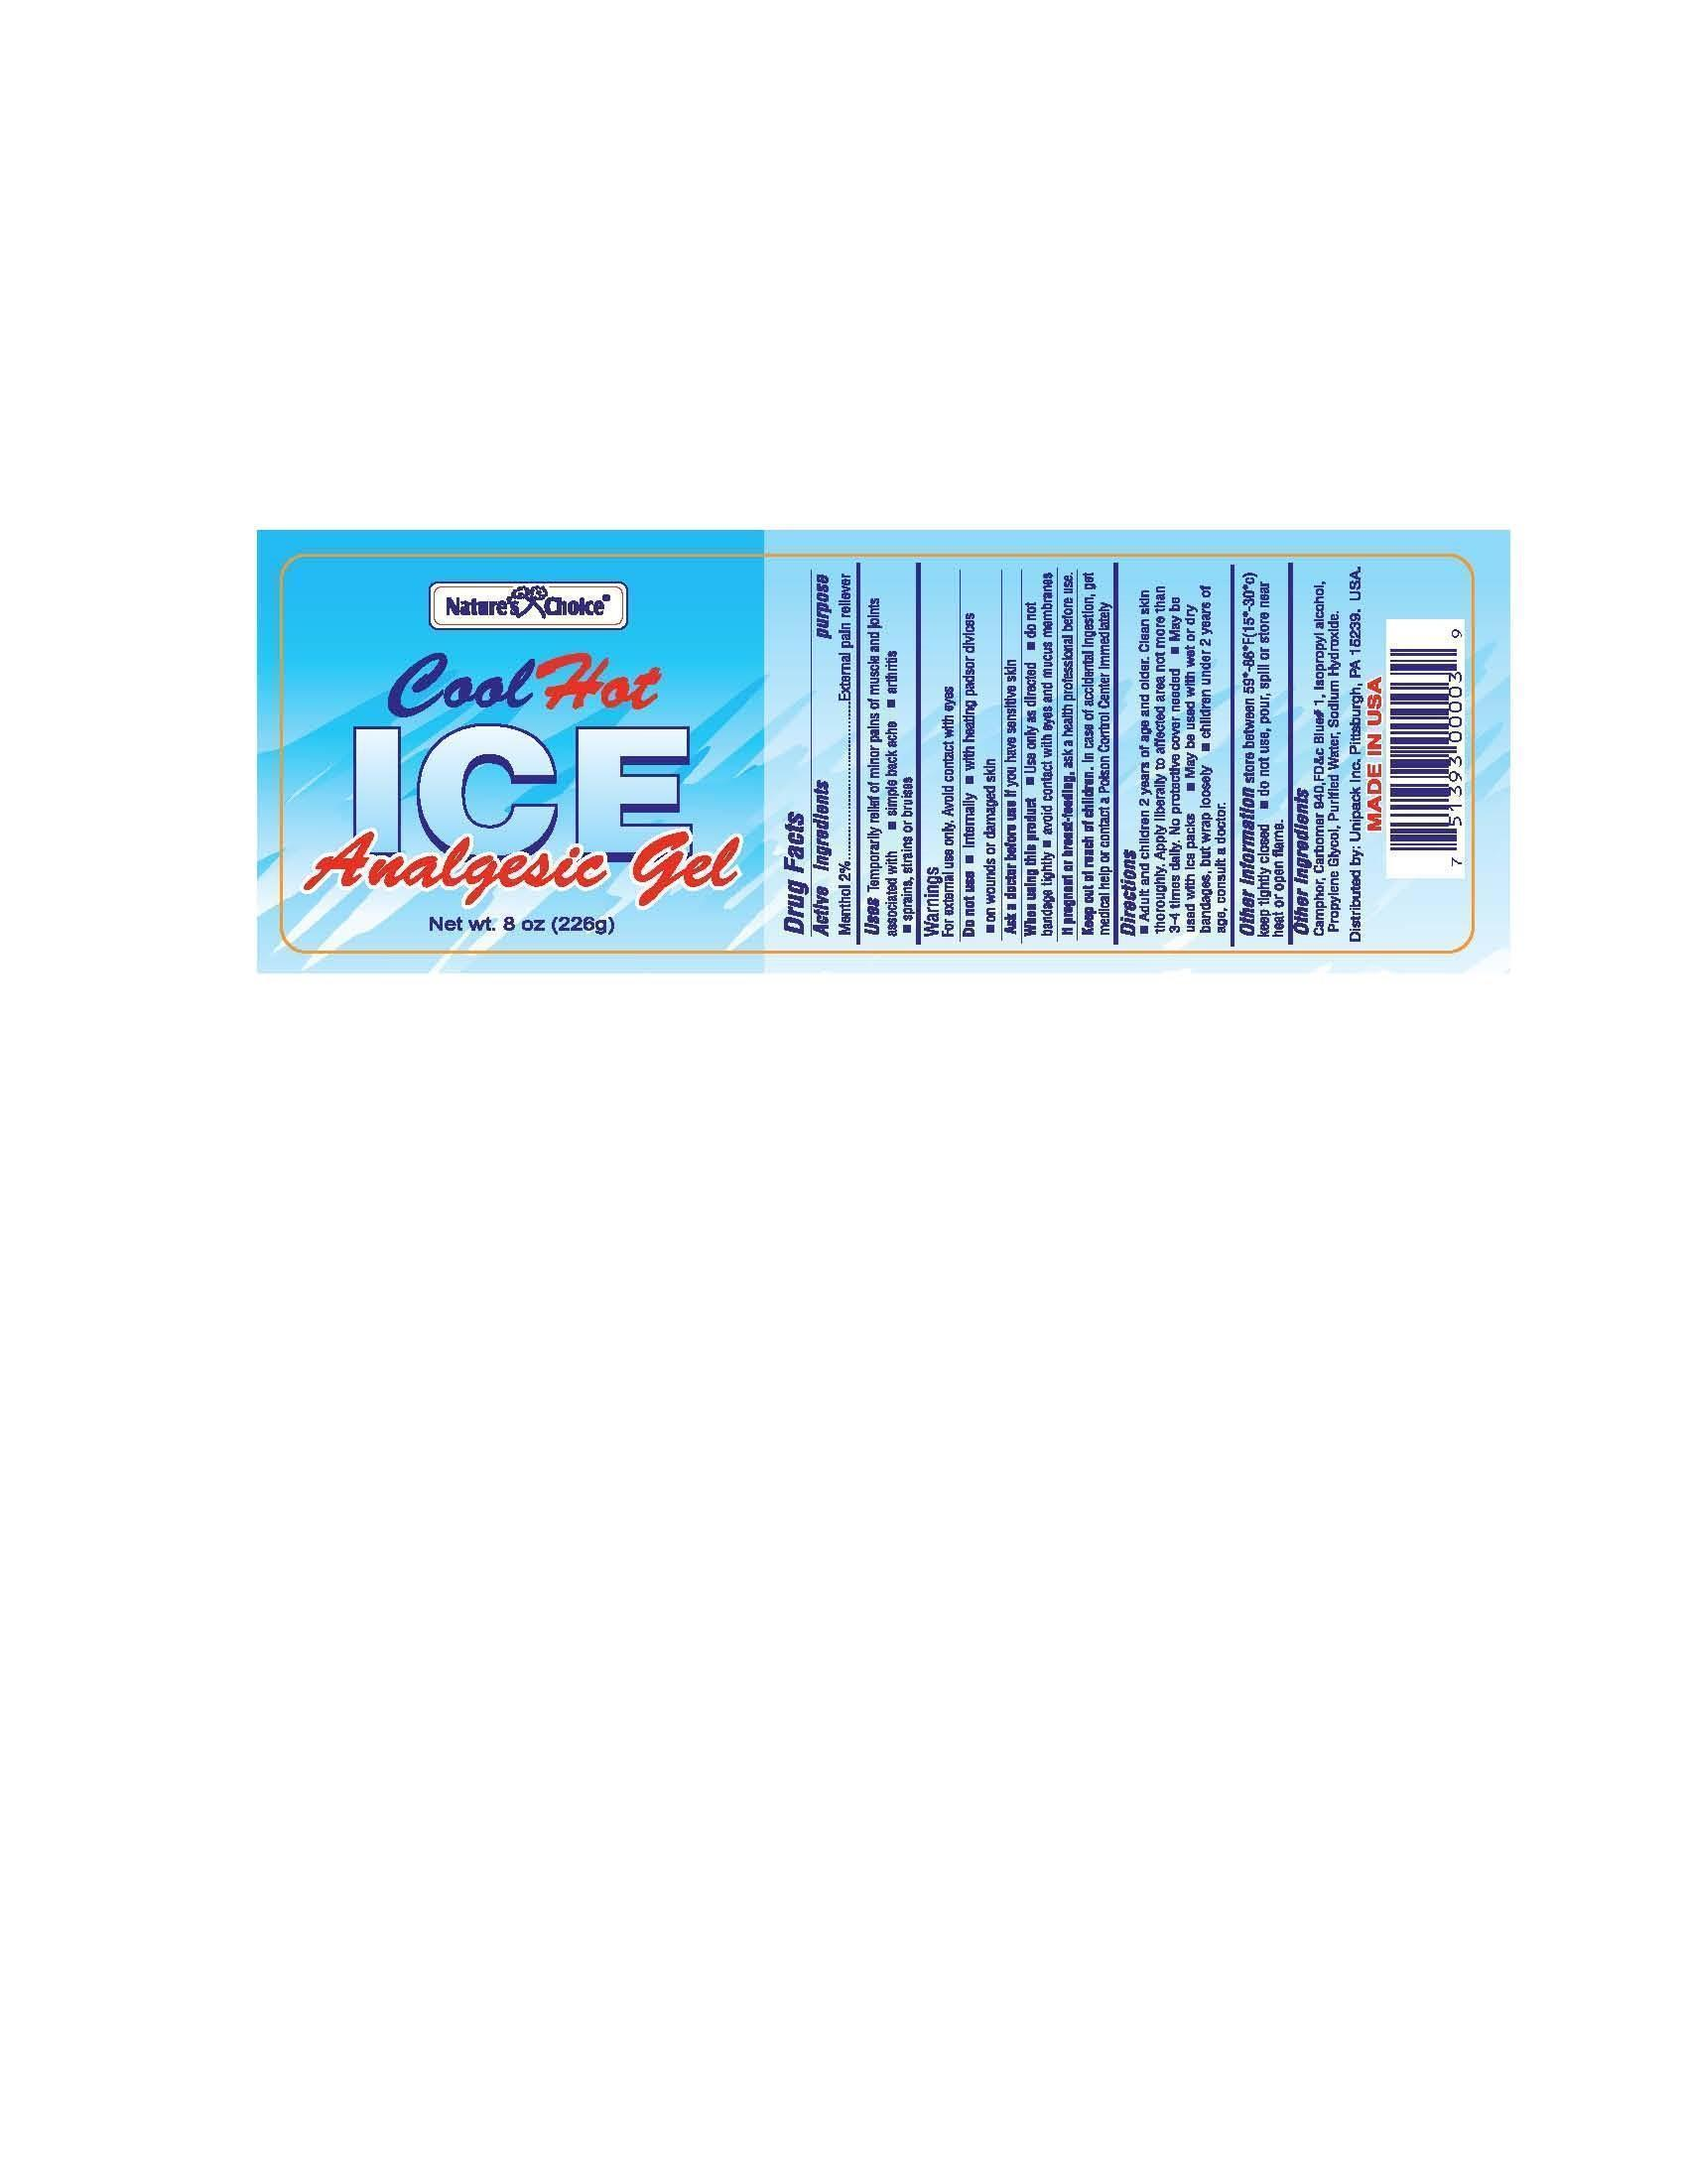 Natures Choice Cool Hot Ice (Menthol) Gel [Unipack, Inc.]